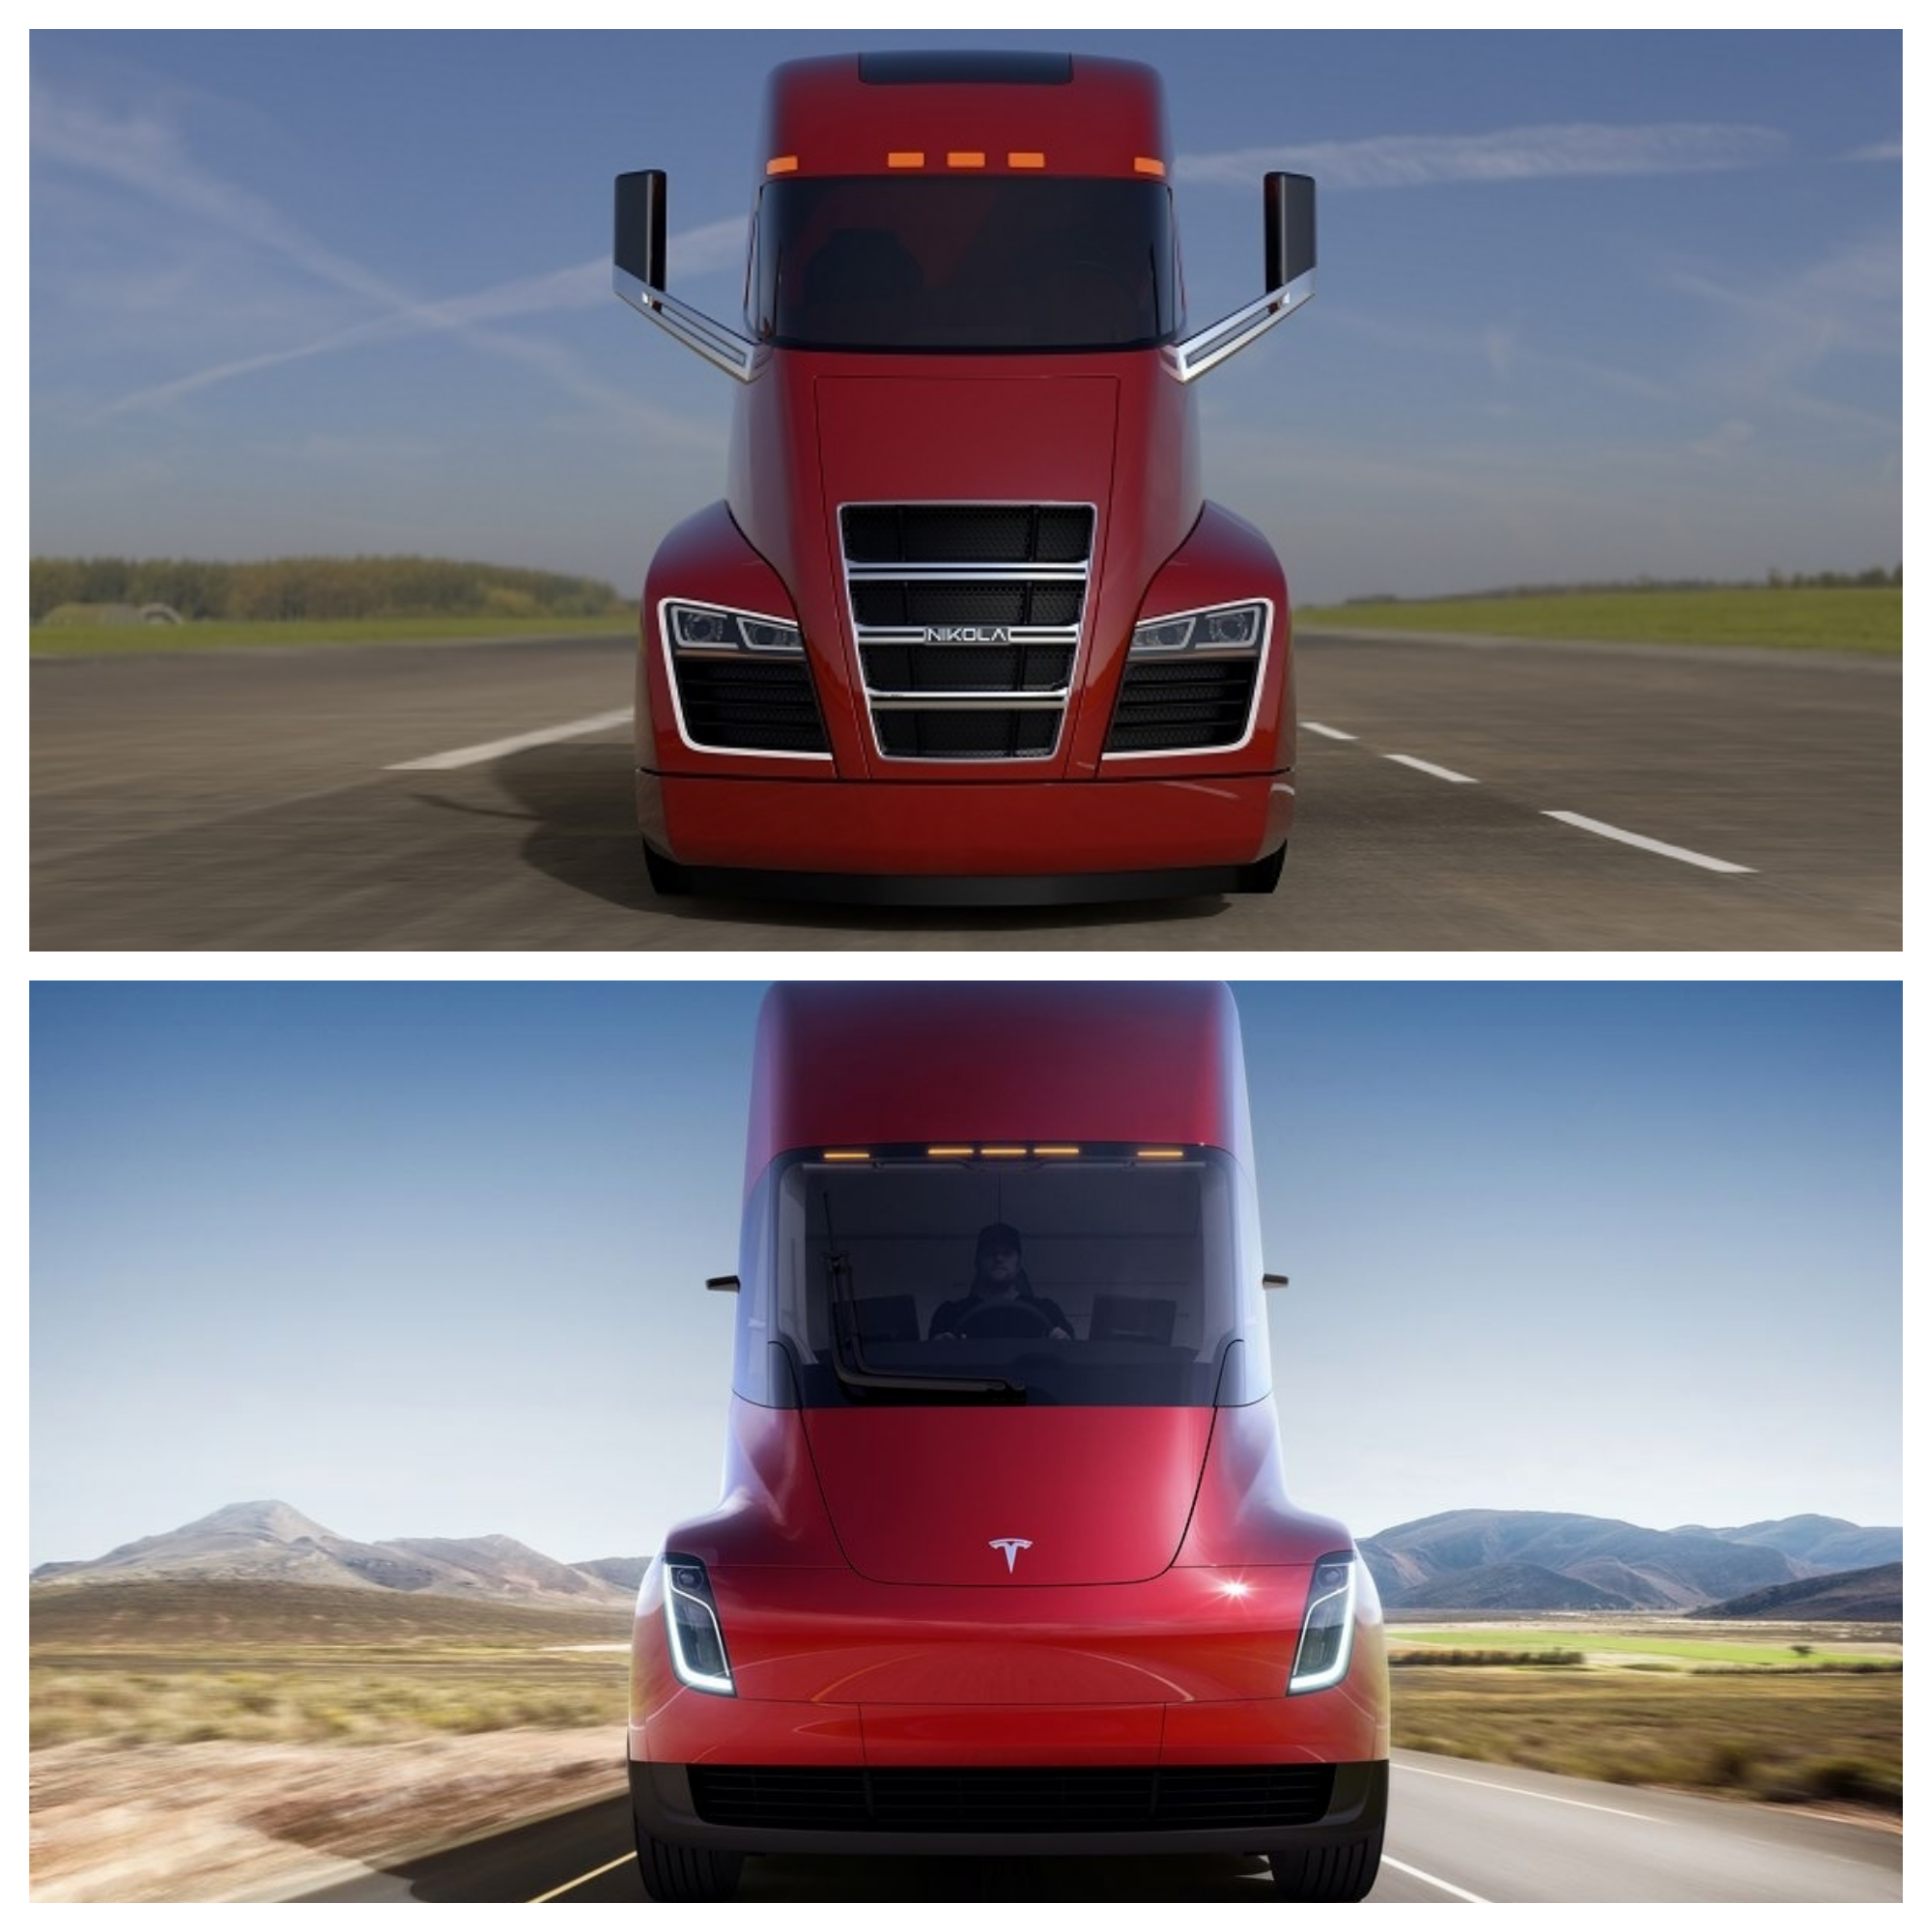 Startup sues Tesla for $2 billion over electric big rig truck design